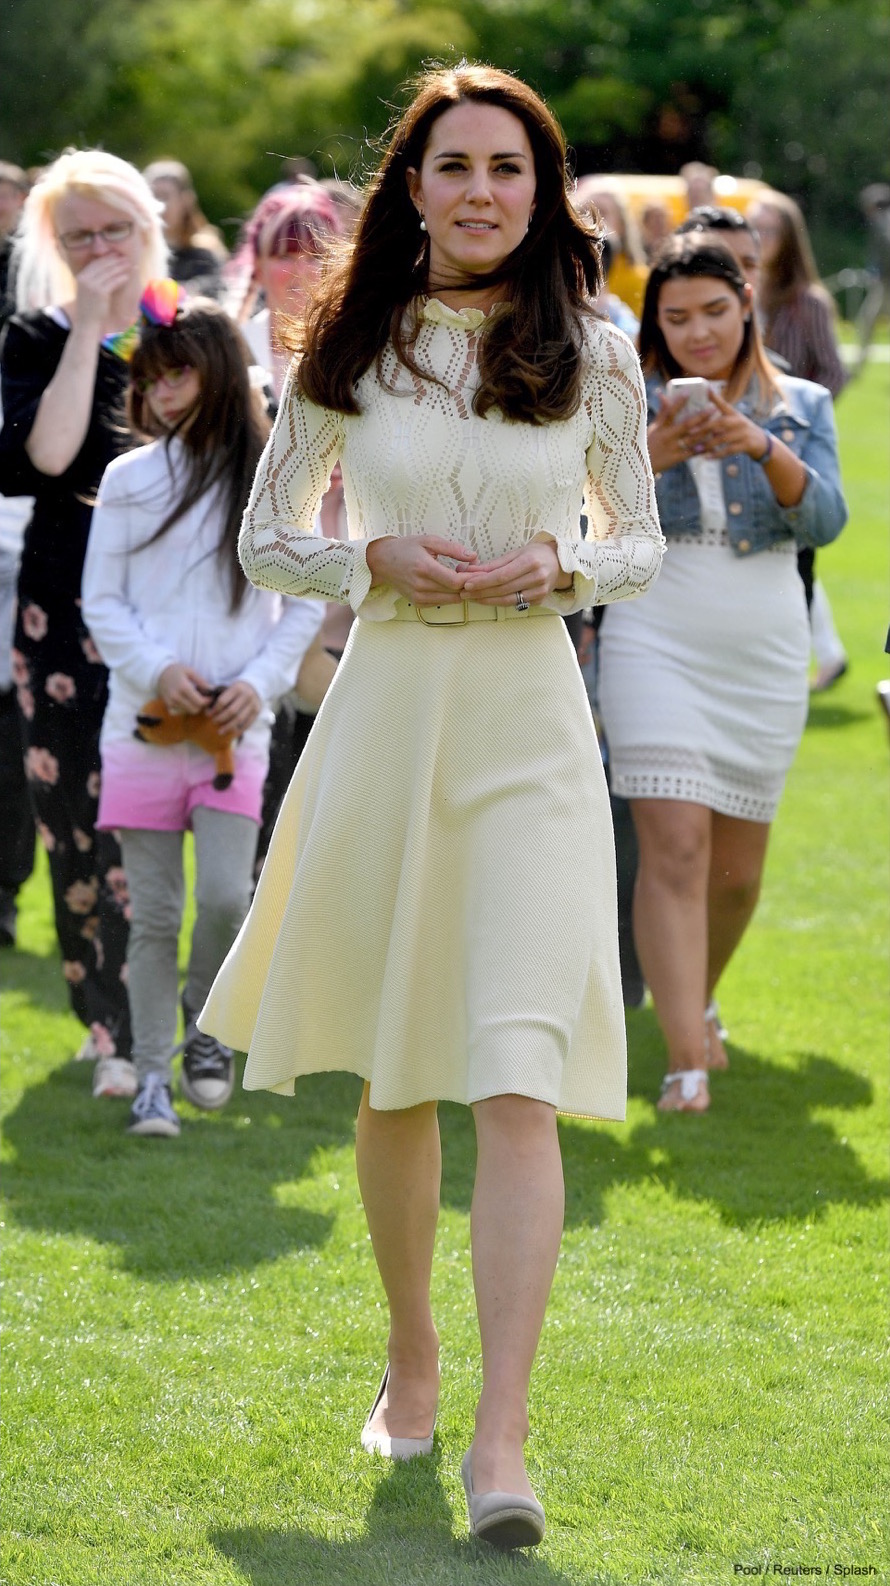 Britain's Catherine, Duchess of Cambridge attends a tea party at Buckingham Palace in London, Britain on May 13, 2017. The Party at The Palace honoured the children of those who have died serving in the Armed Forces. Pictured: Catherine, Duchess of Cambridge wearing the Monsoon Fleur wedges